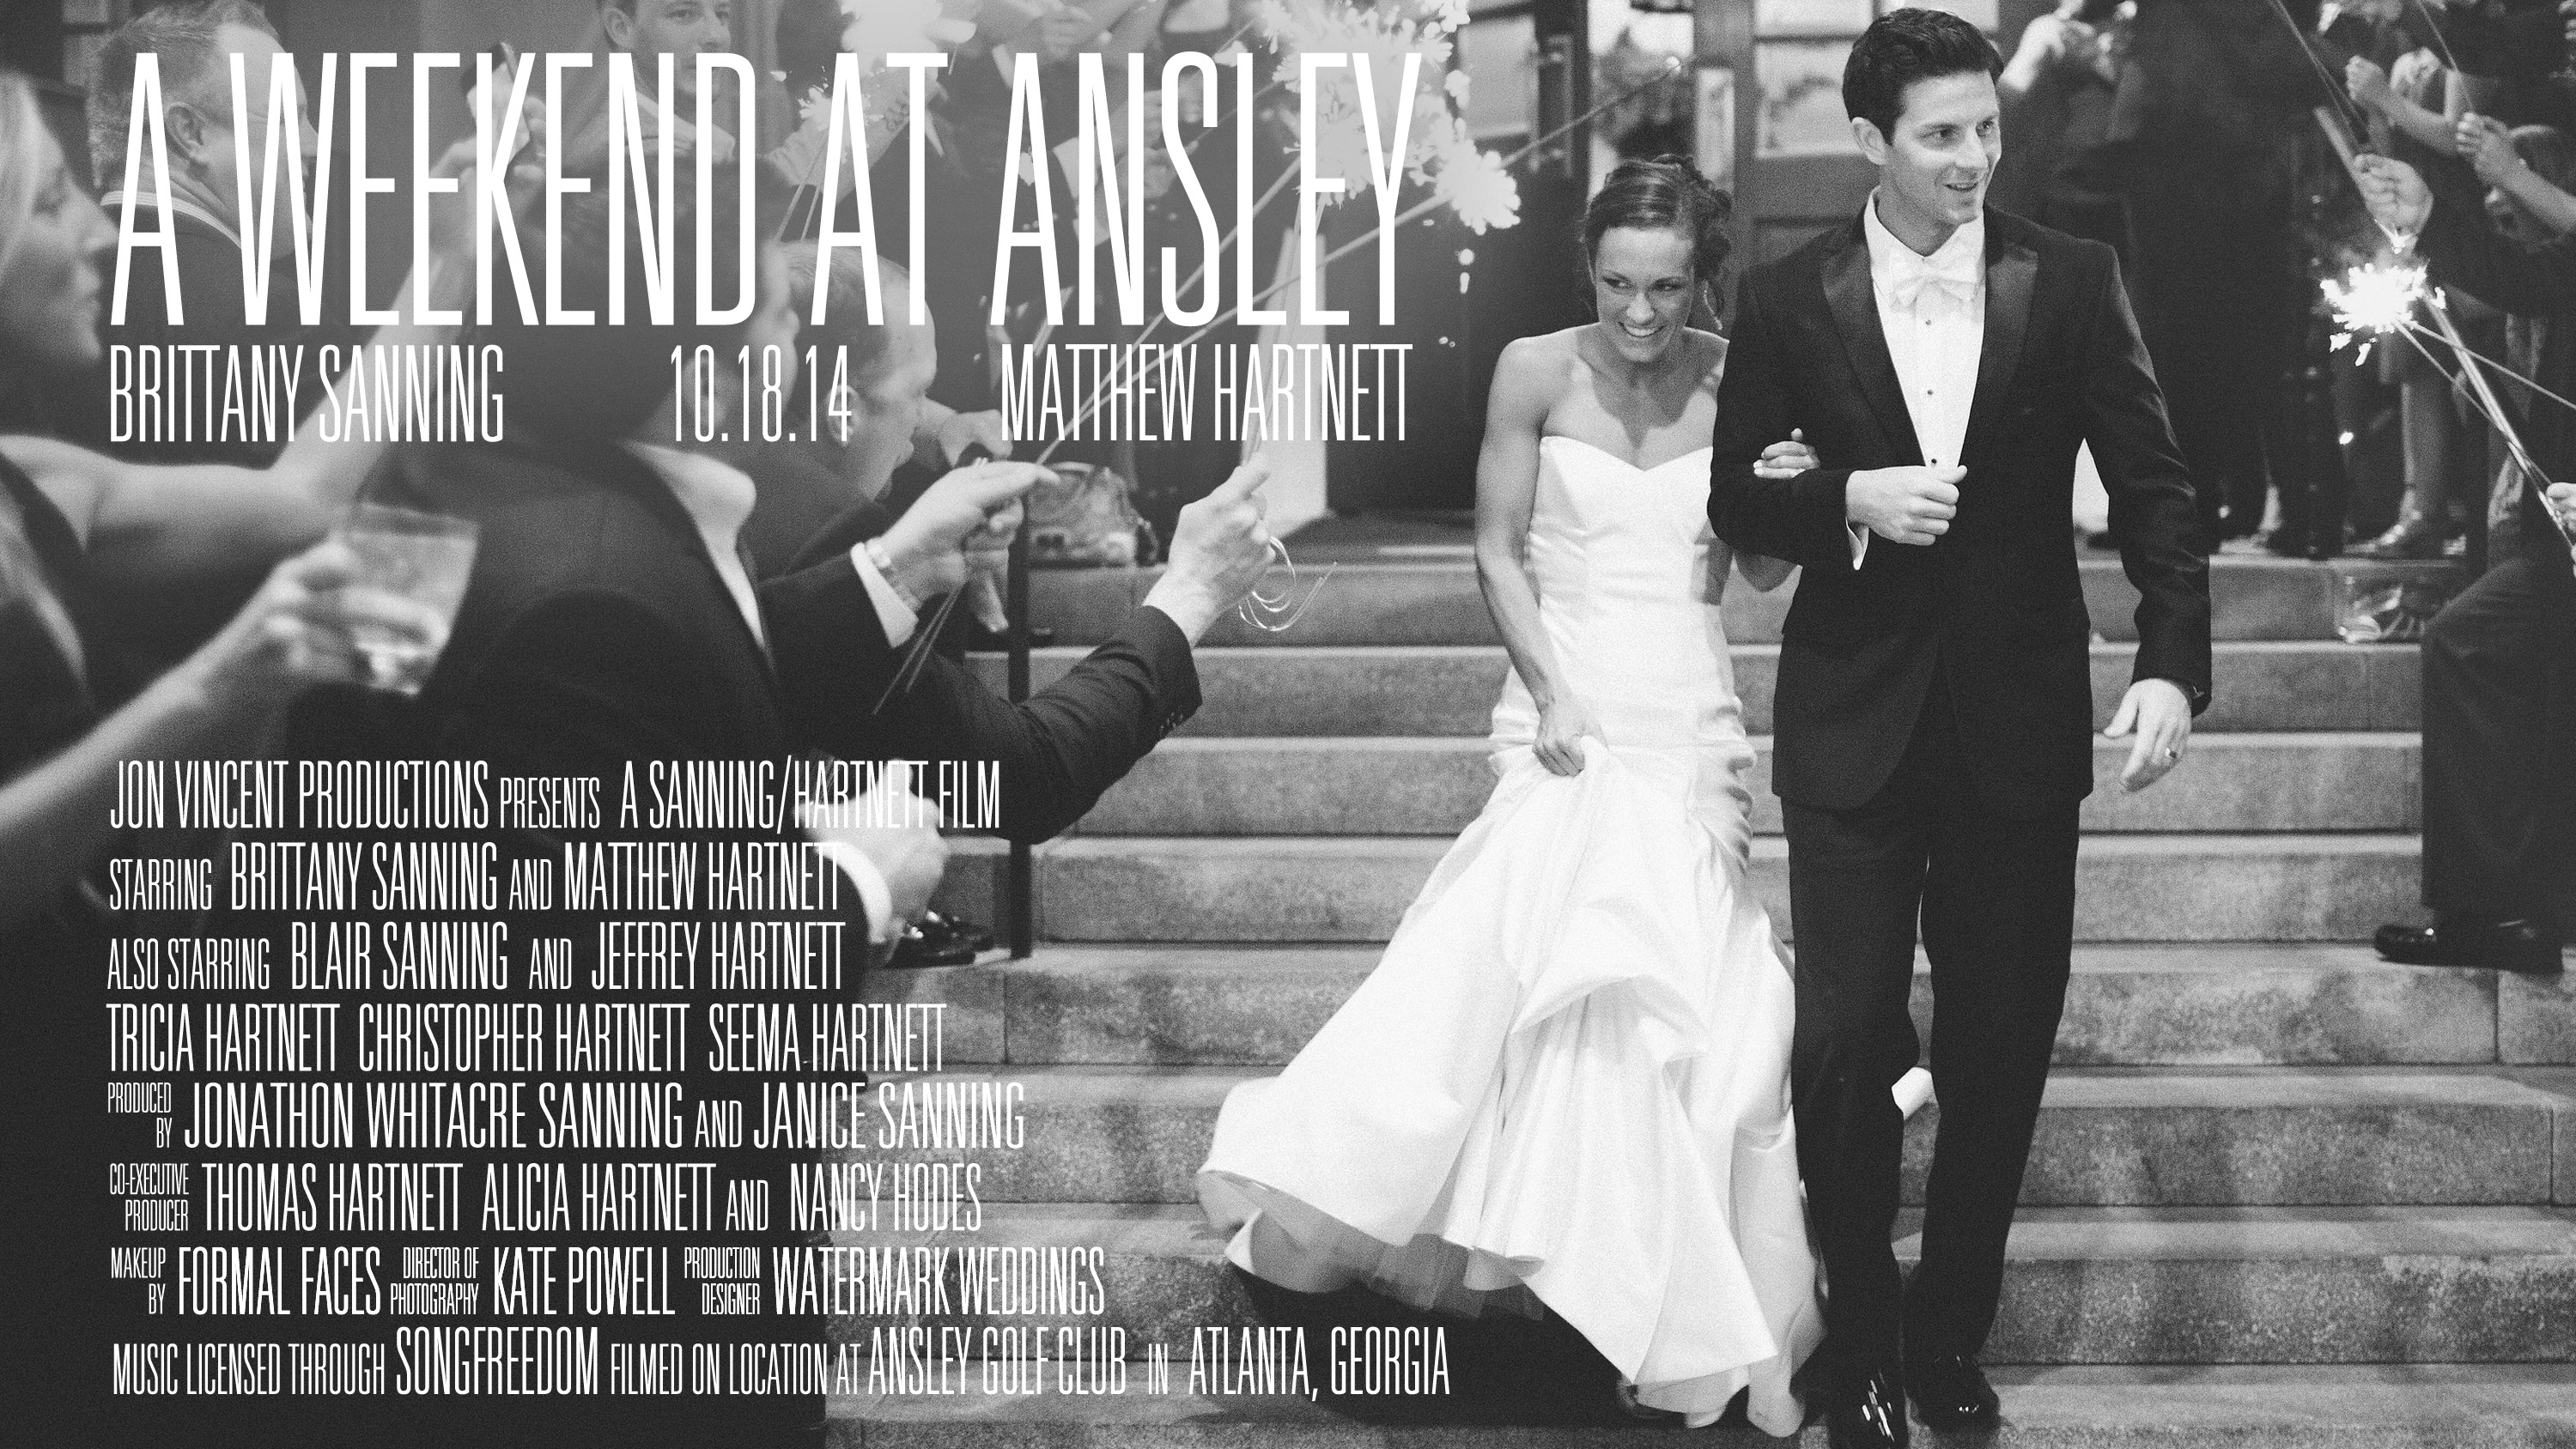 A_Weekend_At_Ansley_Title_Card